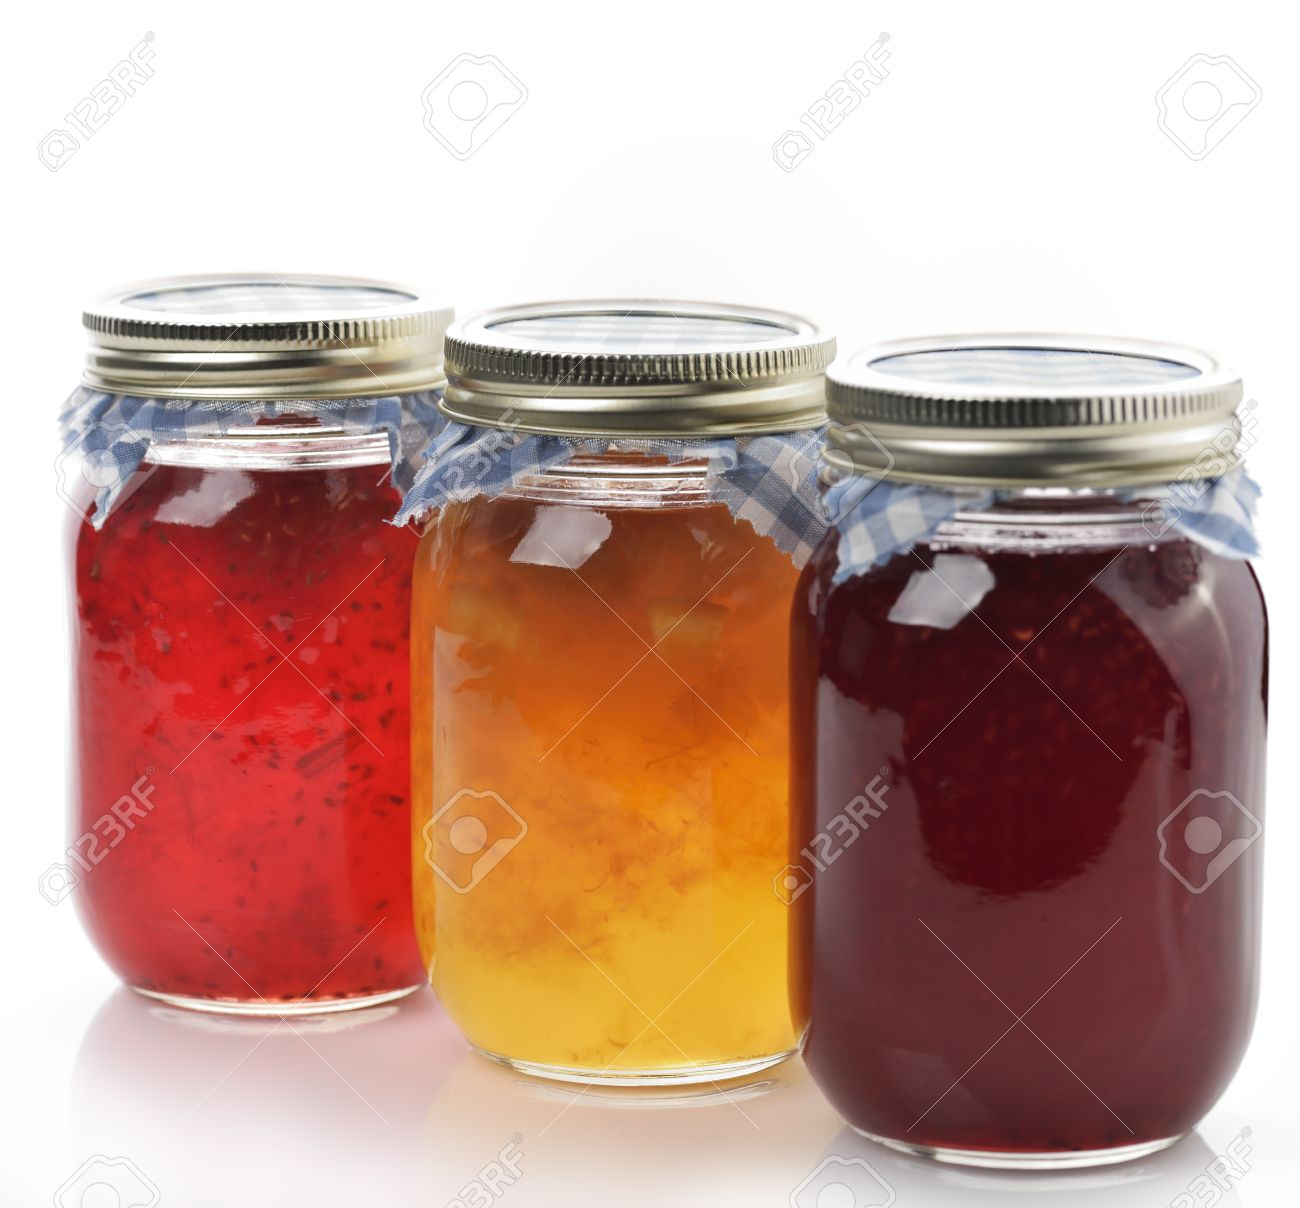 Homemade Marmalade And Jam In The Glass Jars Stock Photo - 20332369